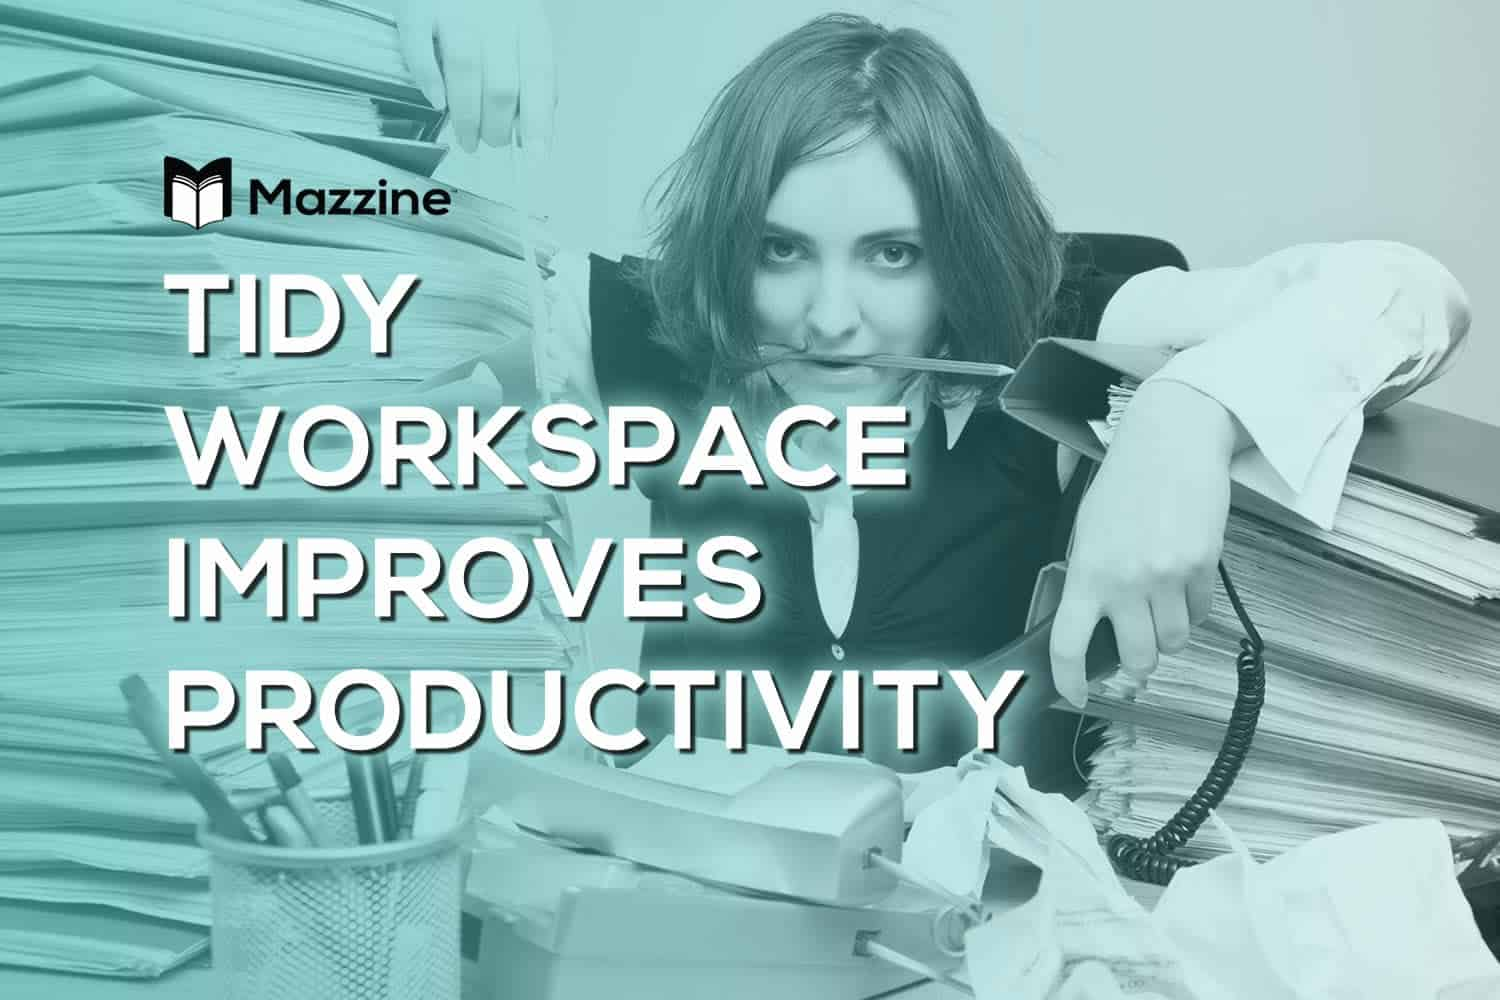 Tidy Workspace Improves Productivity